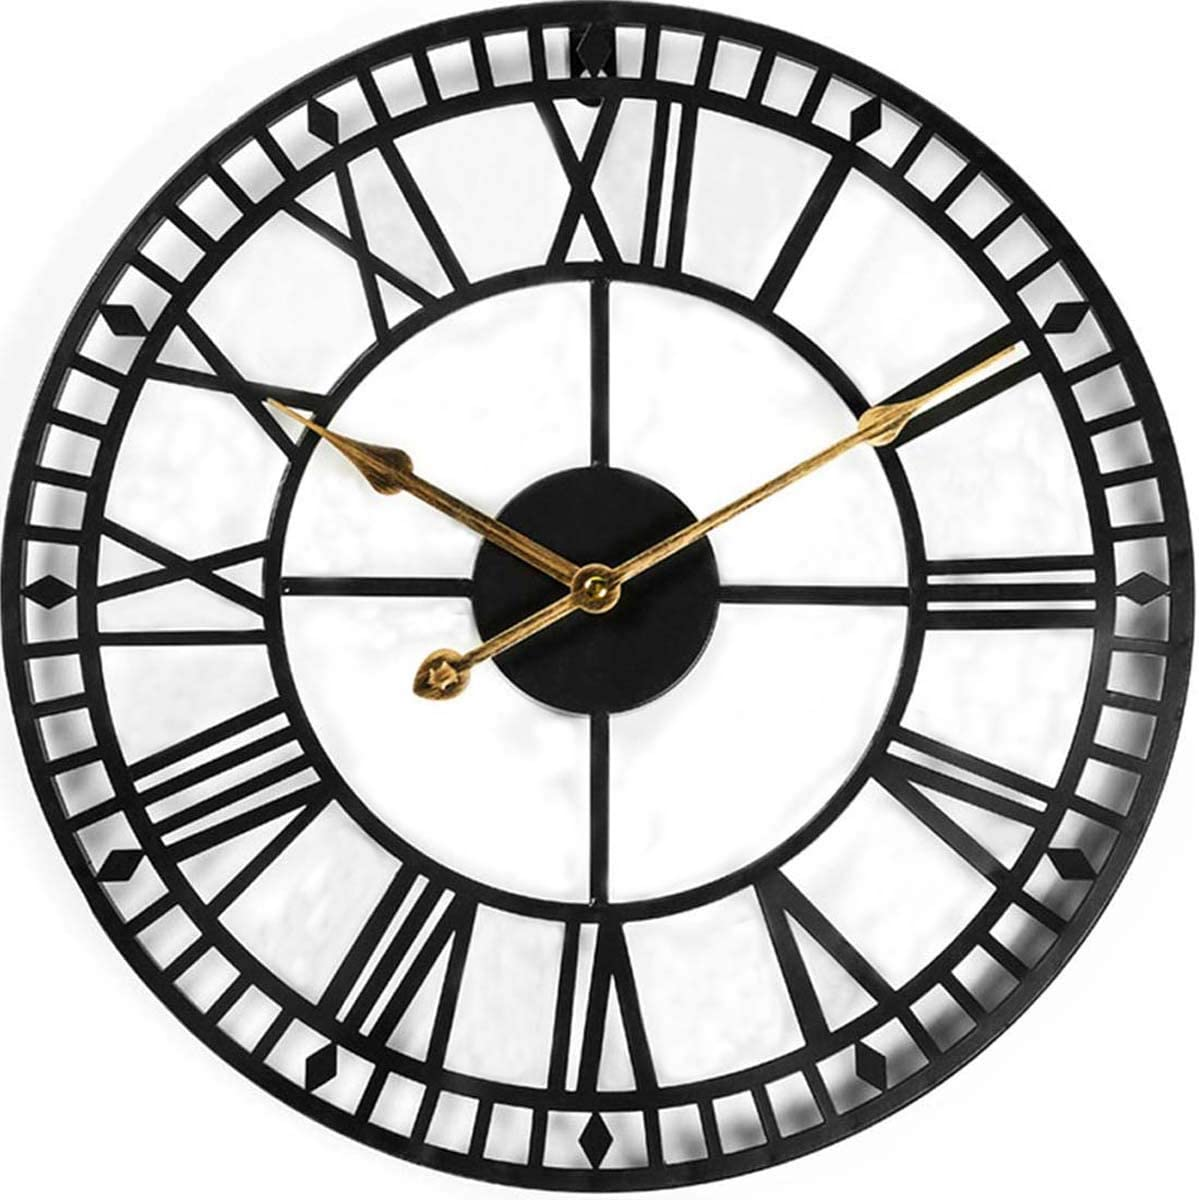 Evursua 24 Inch Large Metal Wall Clock Industrial Wall Art Decor Clocks,Silent Battery Operated,Solid Iron Skeleton,Big Roman Numerals,Antique Style